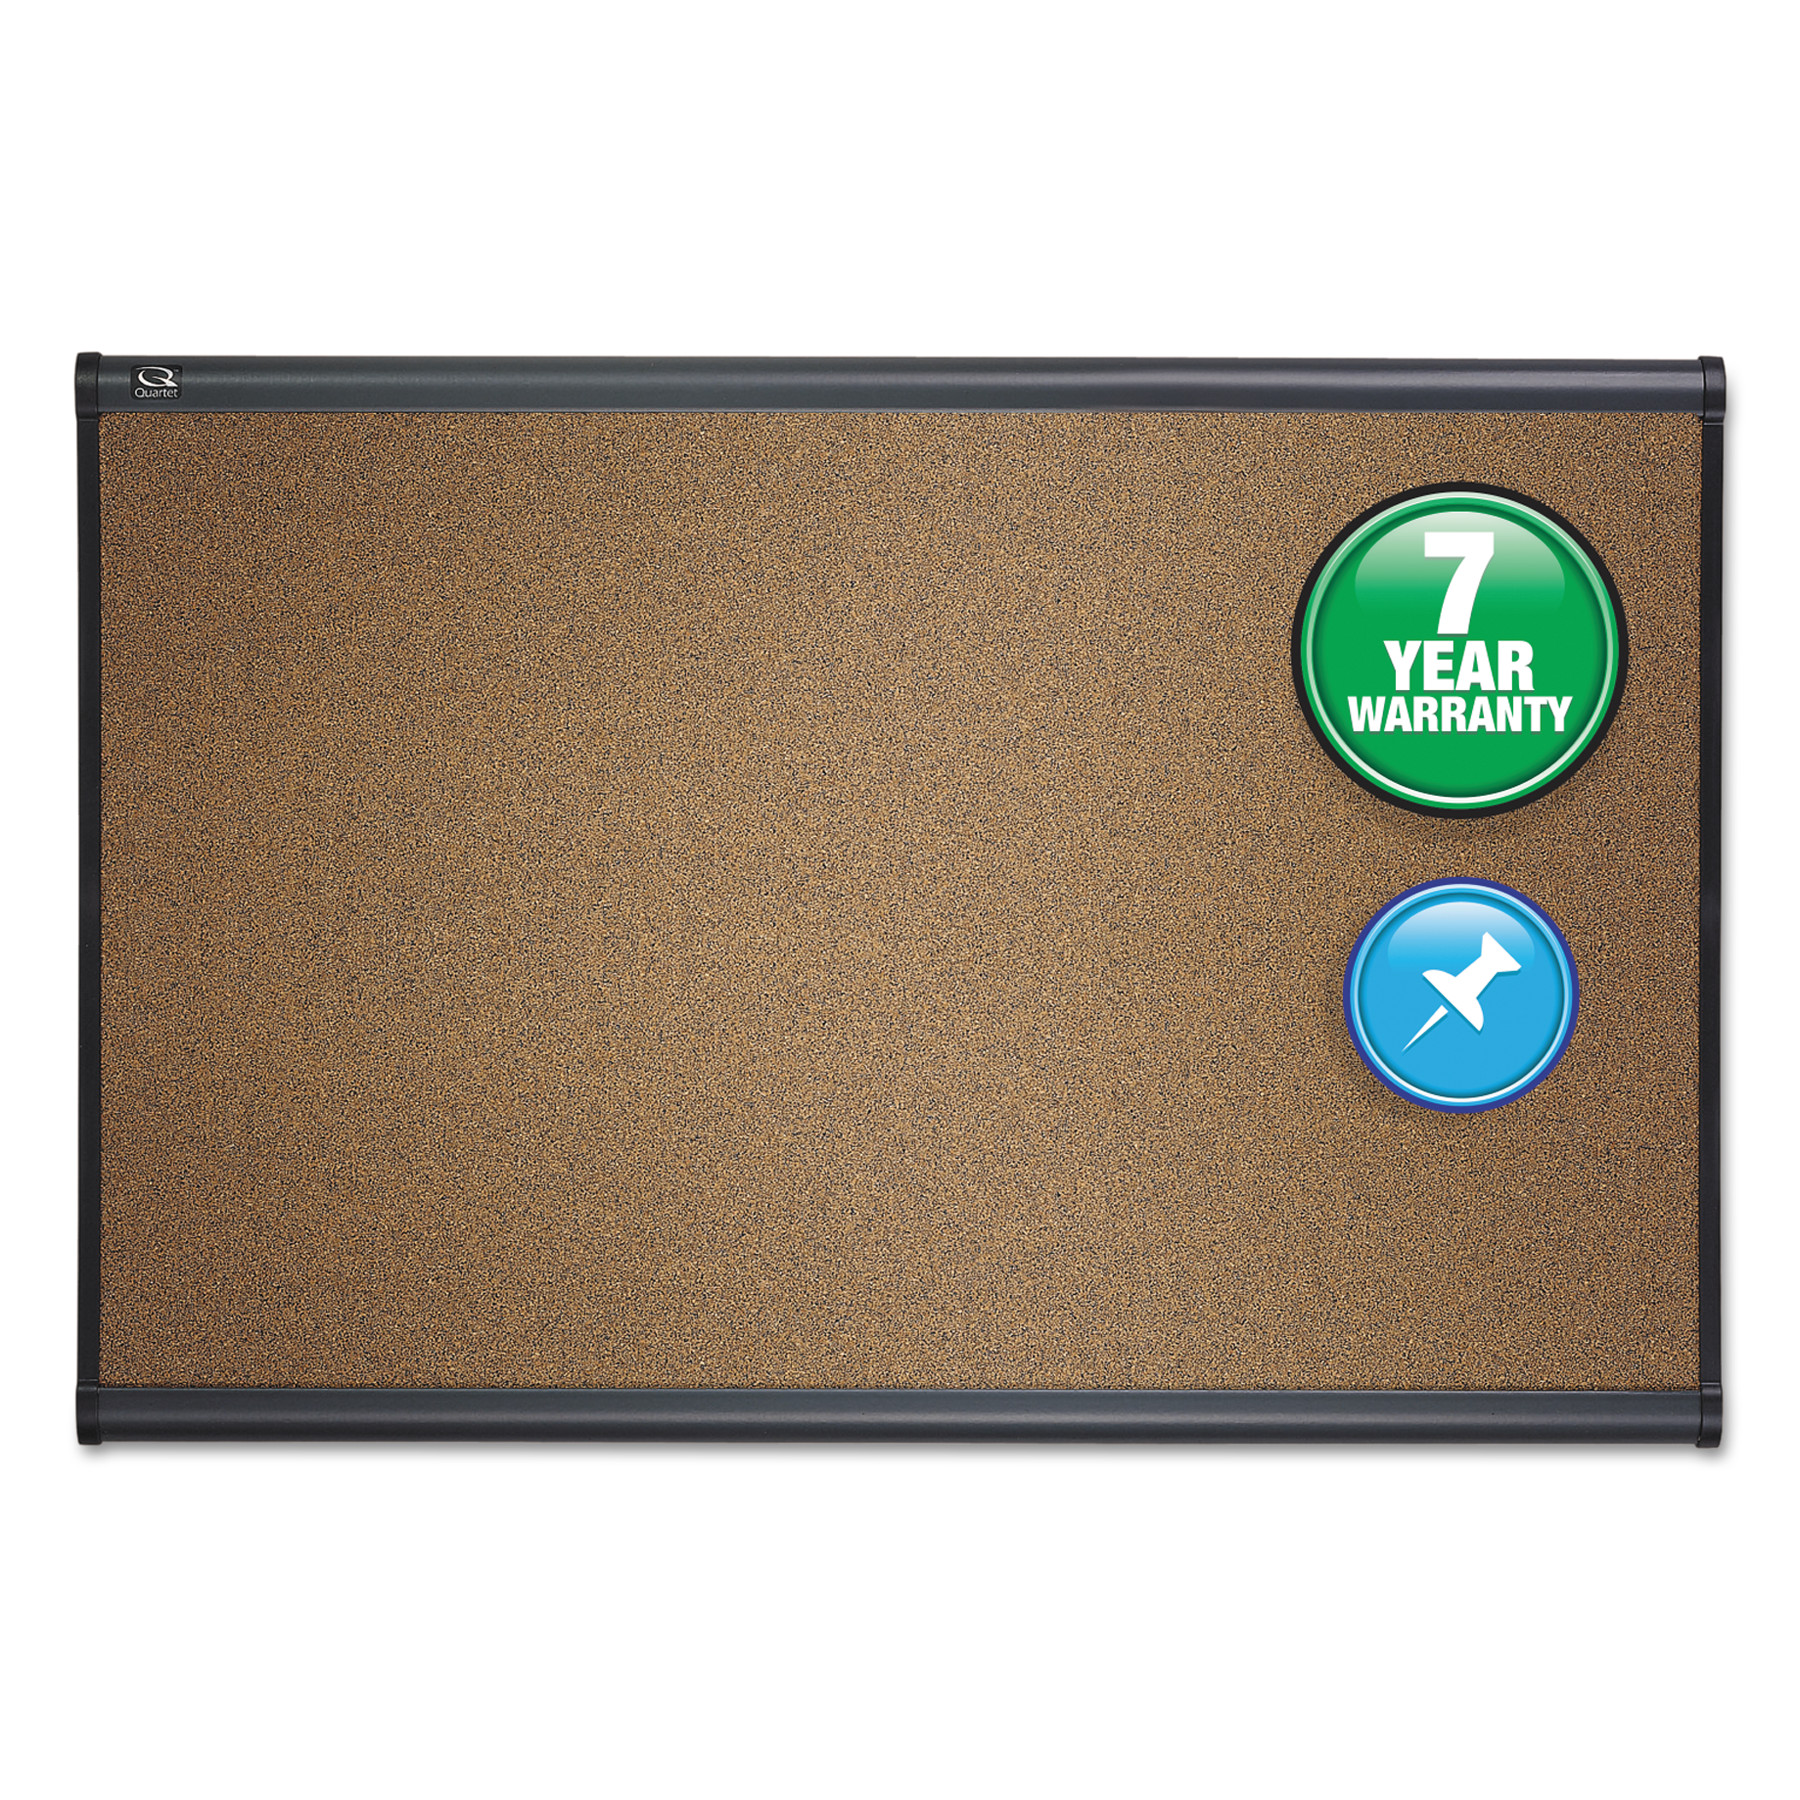 Quartet Prestige Bulletin Board, Brown Graphite-Blend Surface, 36 x 24, Aluminum Frame -QRTB243G